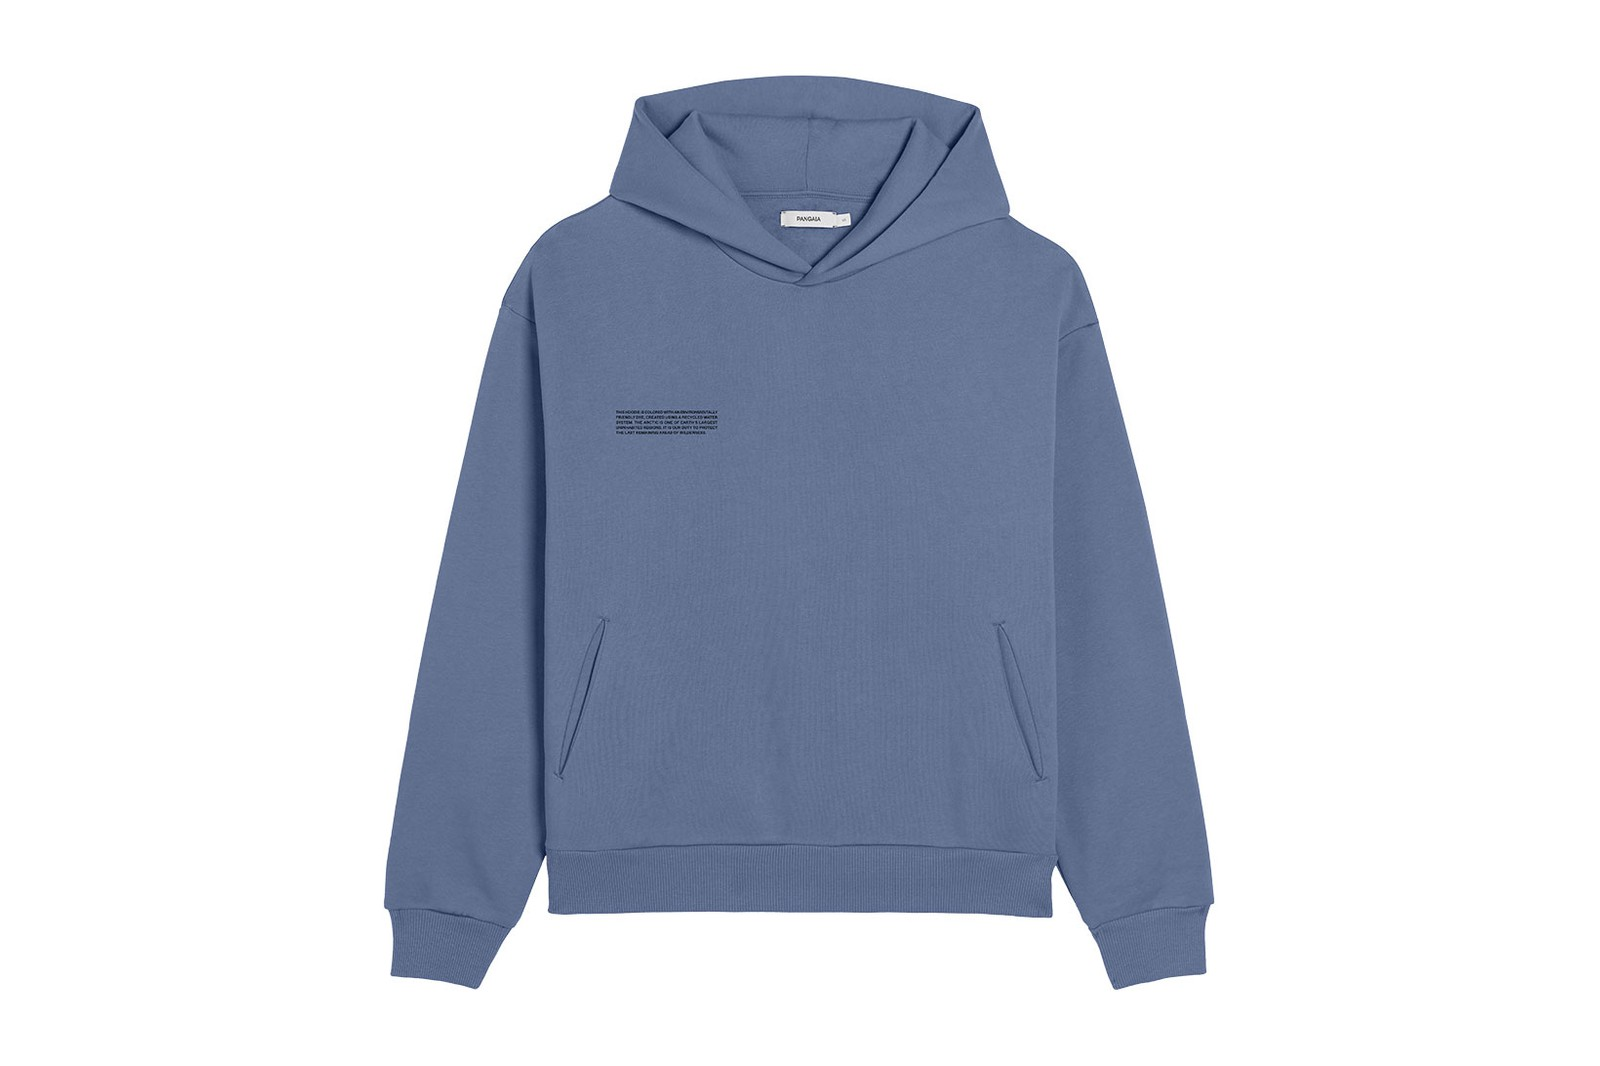 pangaia arctic collection hoodies blue sustainable eco-friendly sweatshirts pants loungewear price release